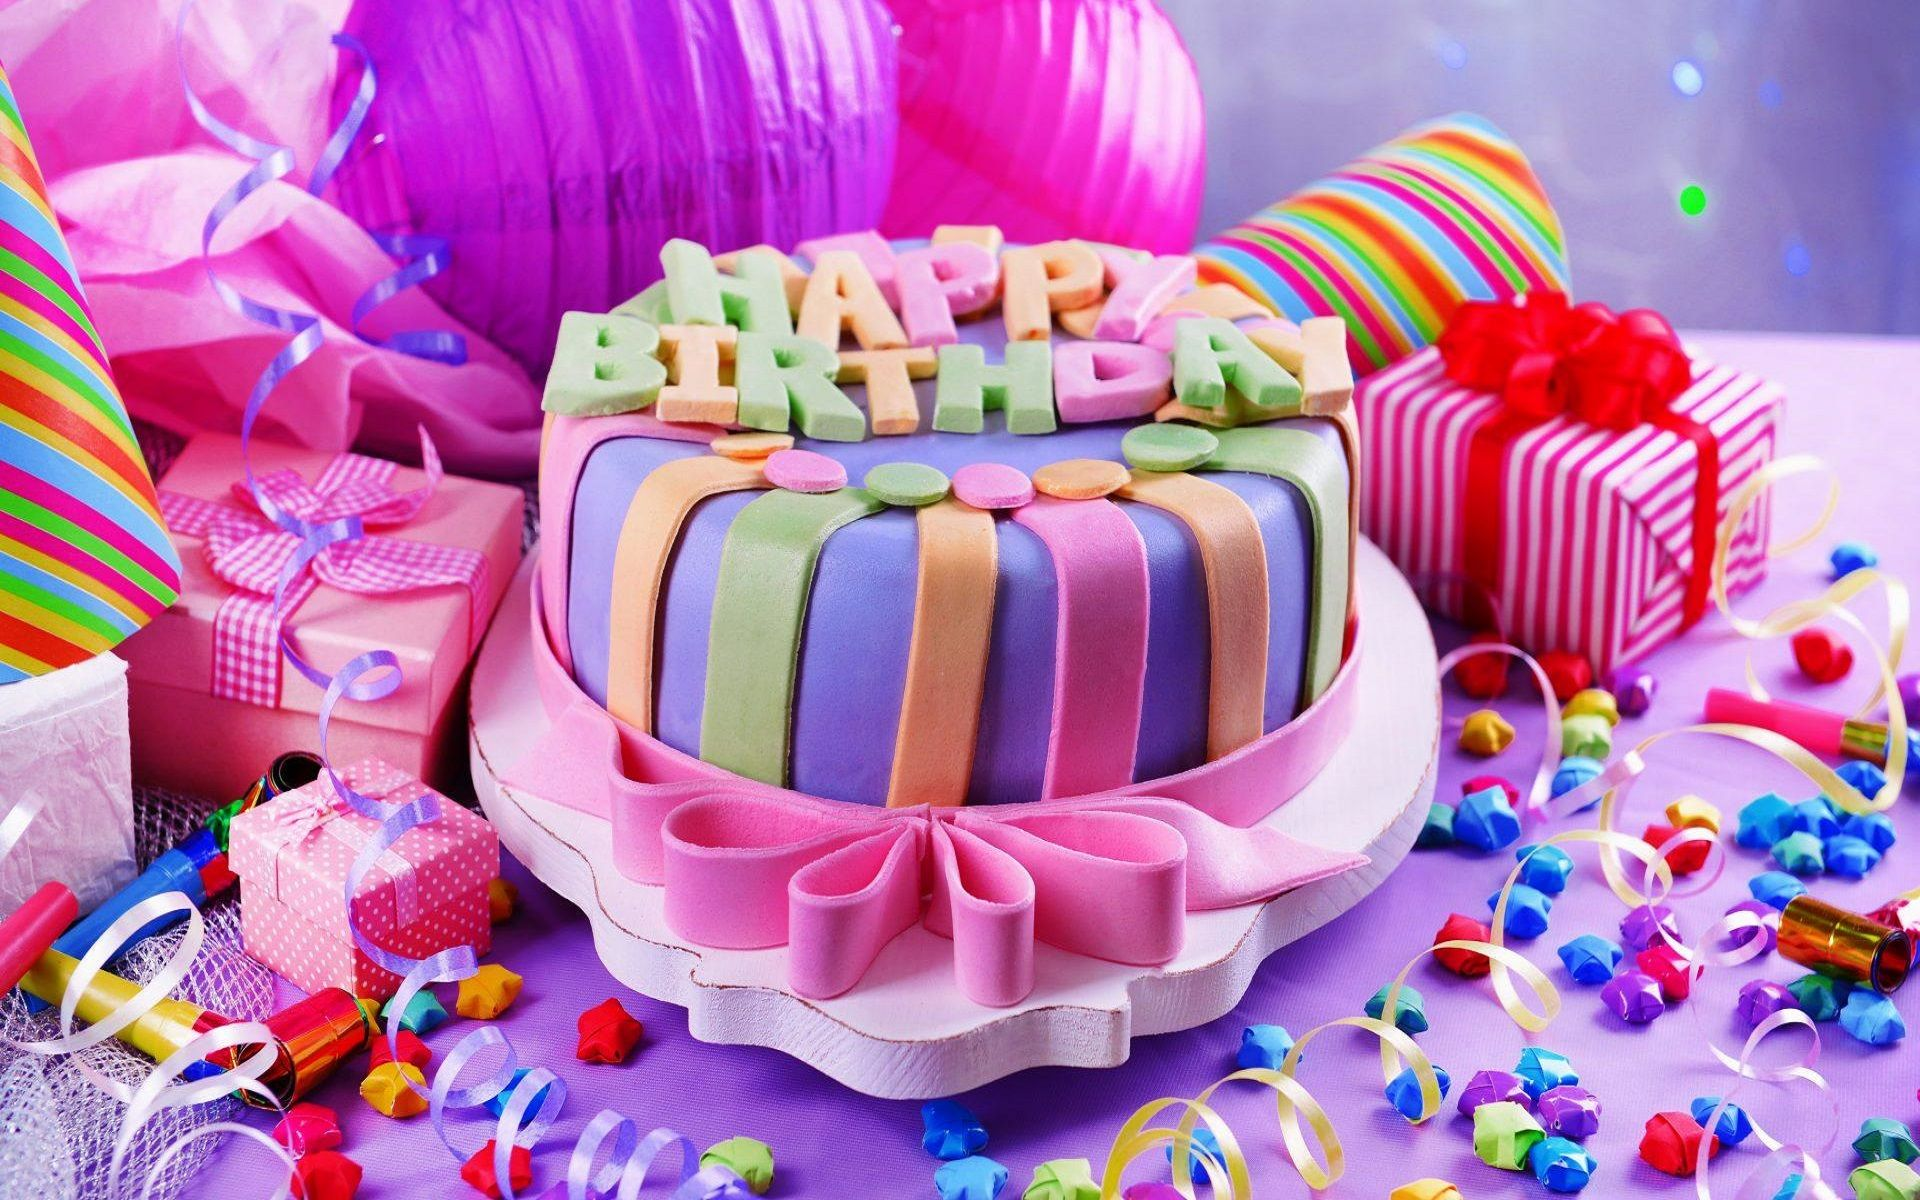 Sendcakestopune samedaycakesdeliveryinpune call 08585927300 https how to search top florist in bangalore online for flowers delivery in bangalore and best cake shops in bangalore that can send cakes to bangalore same day izmirmasajfo